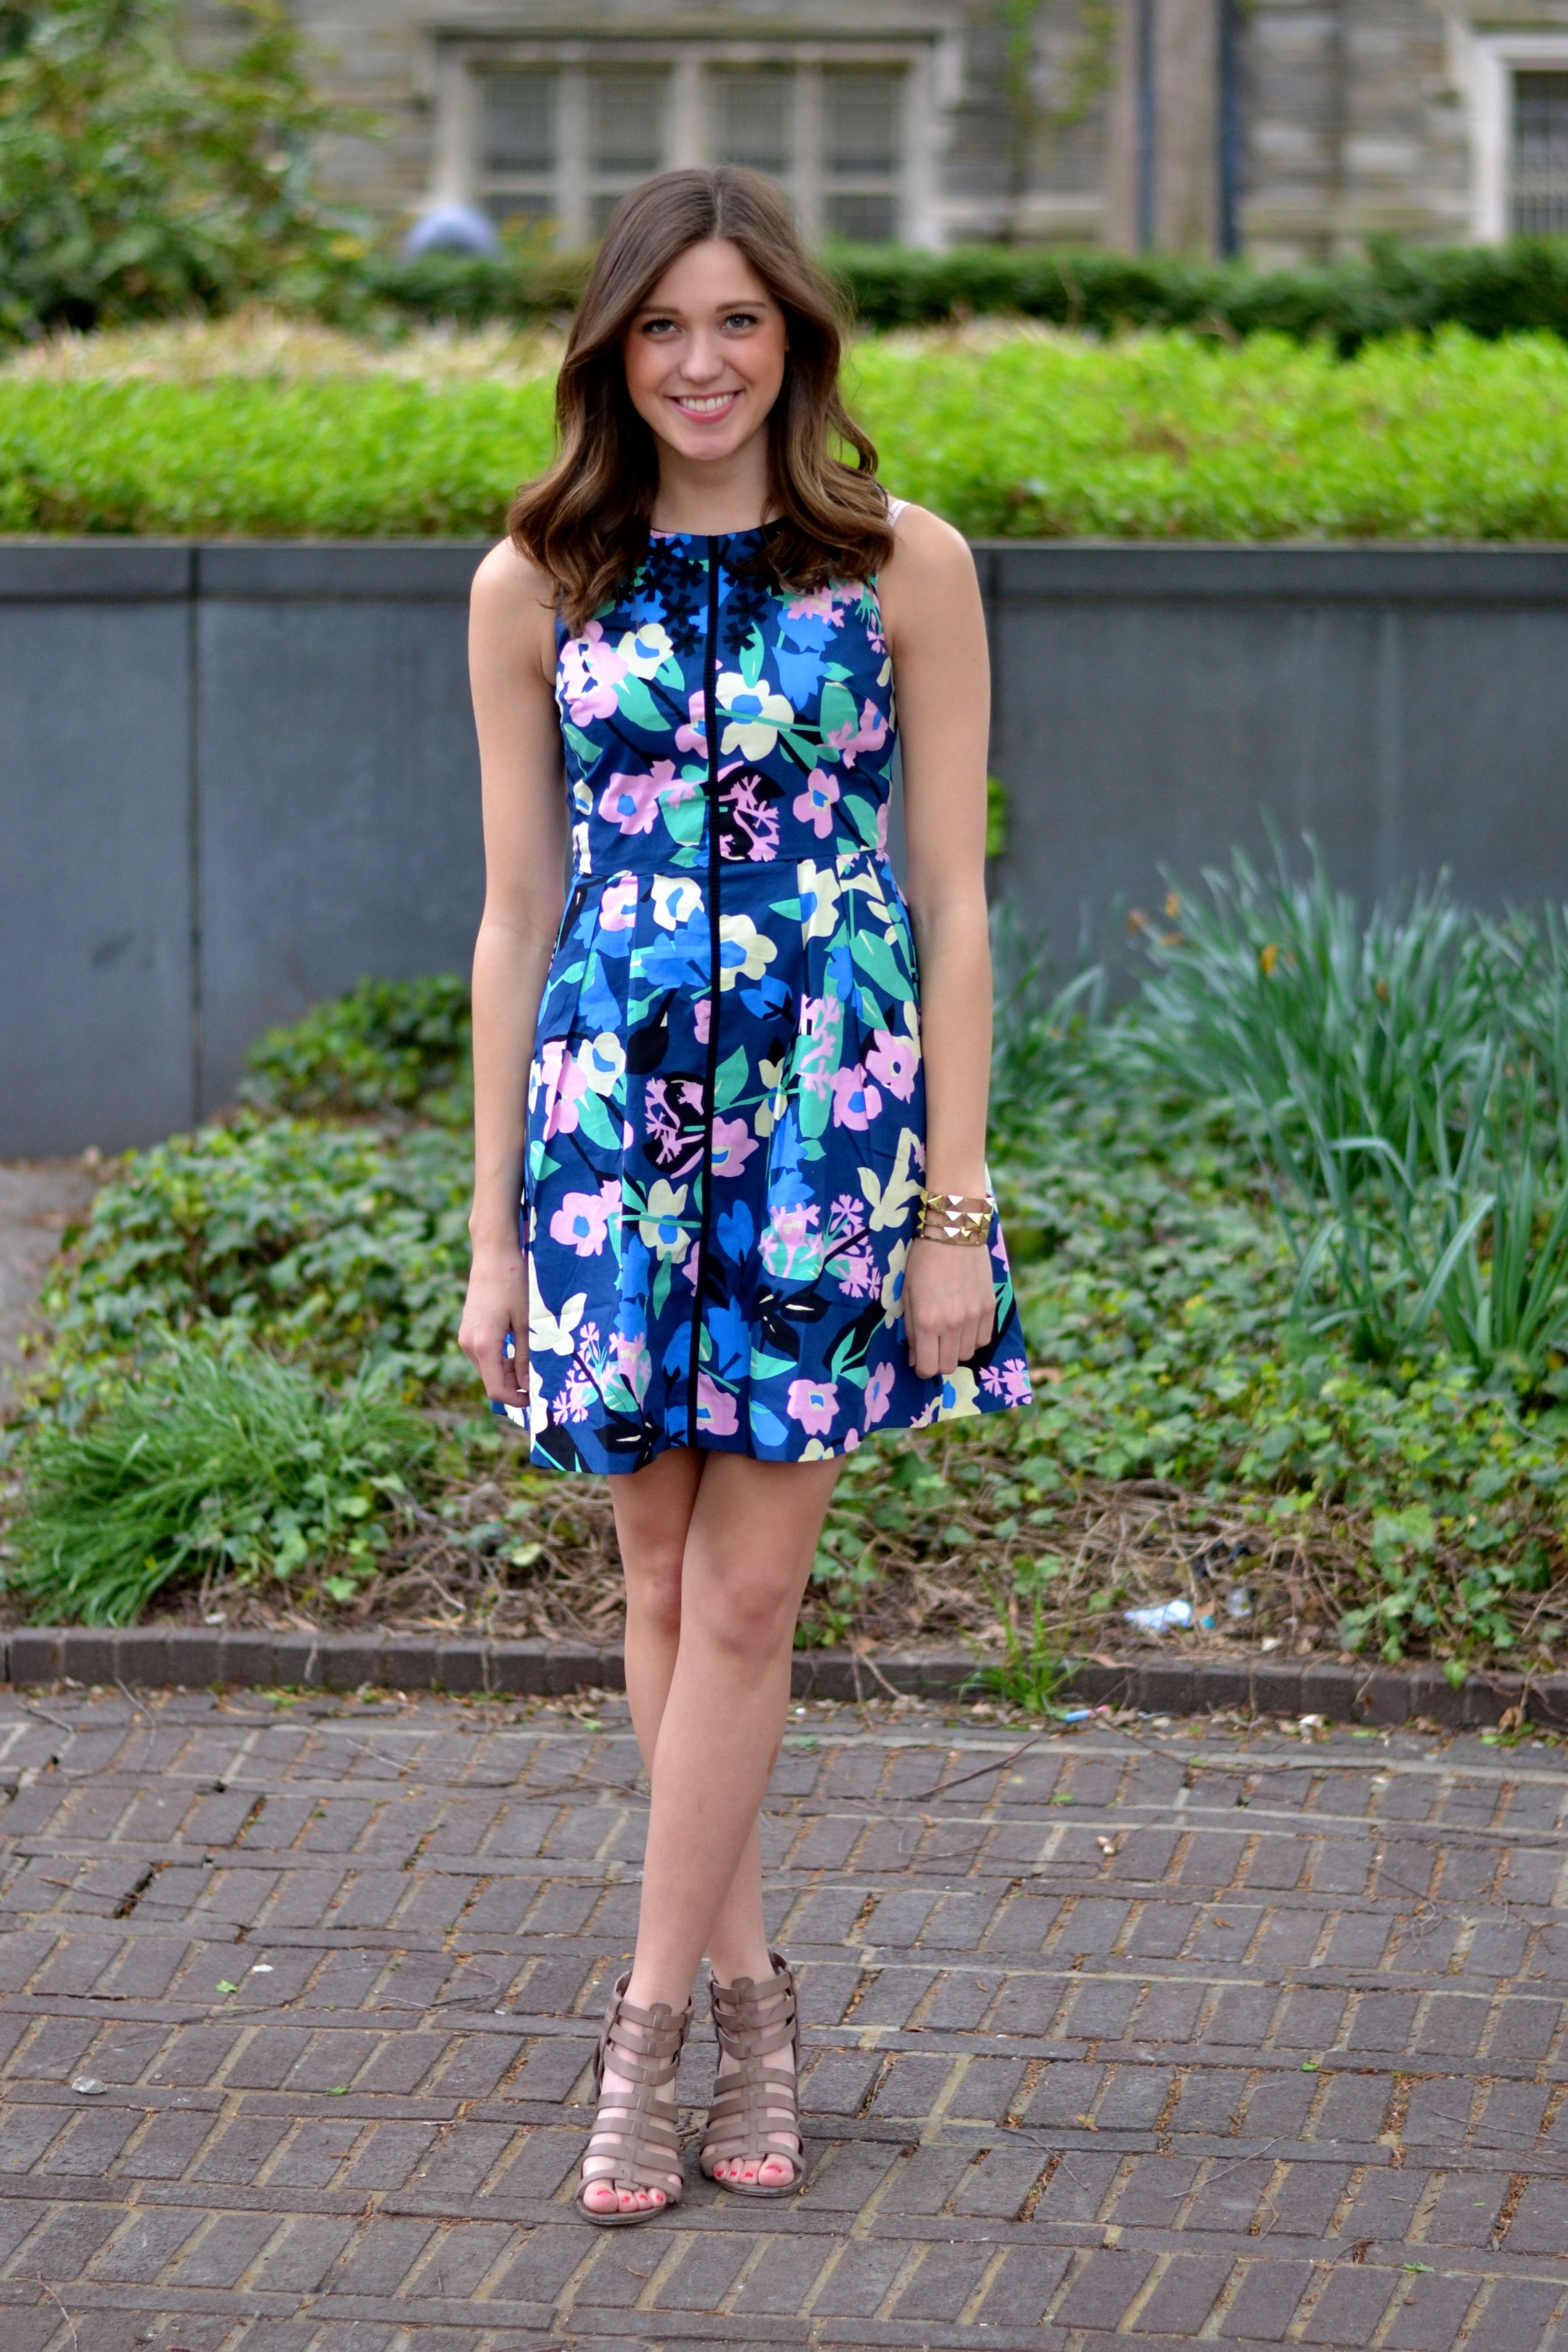 5 Super Cute Graduation Outfit Ideas To Steal For Your Big Day